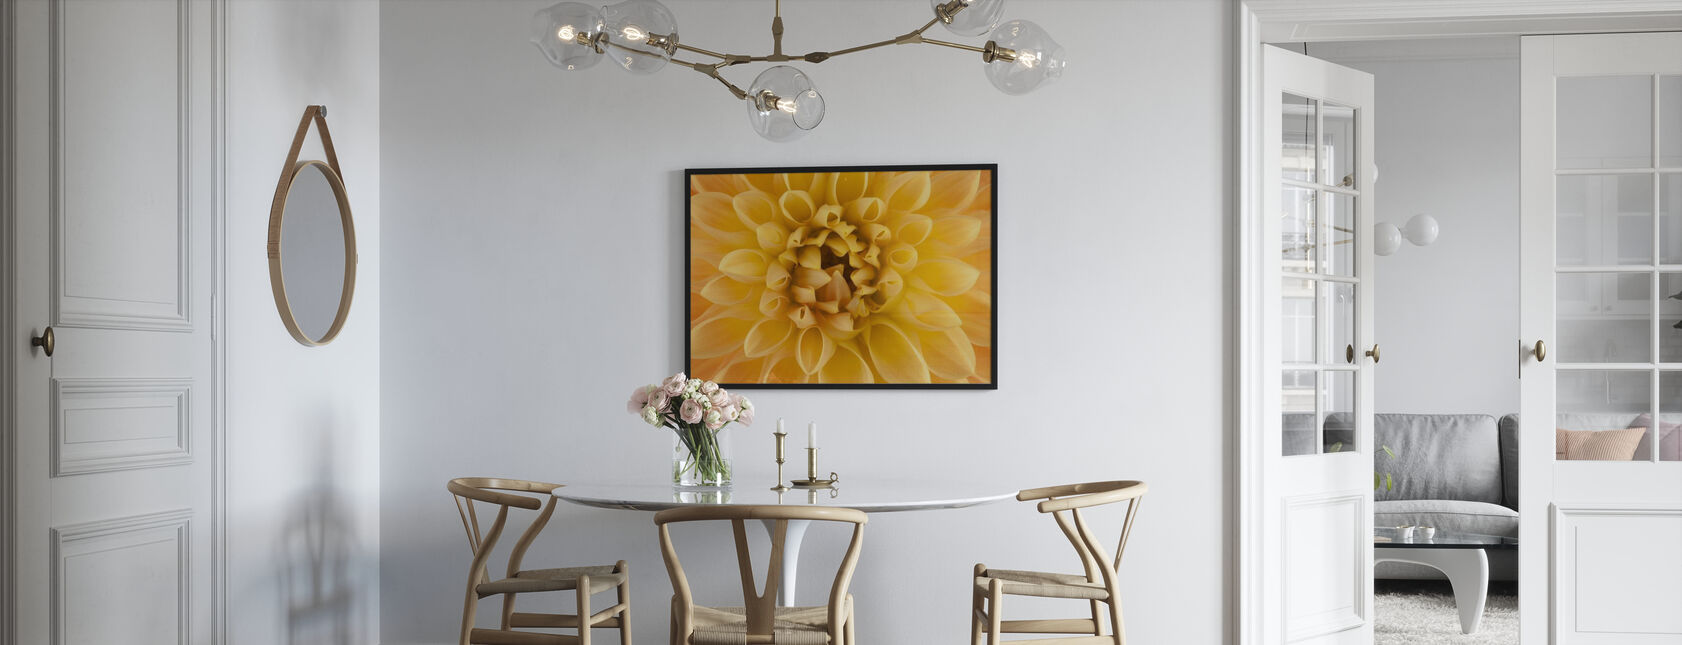 Amber Dahlia - Framed print - Kitchen